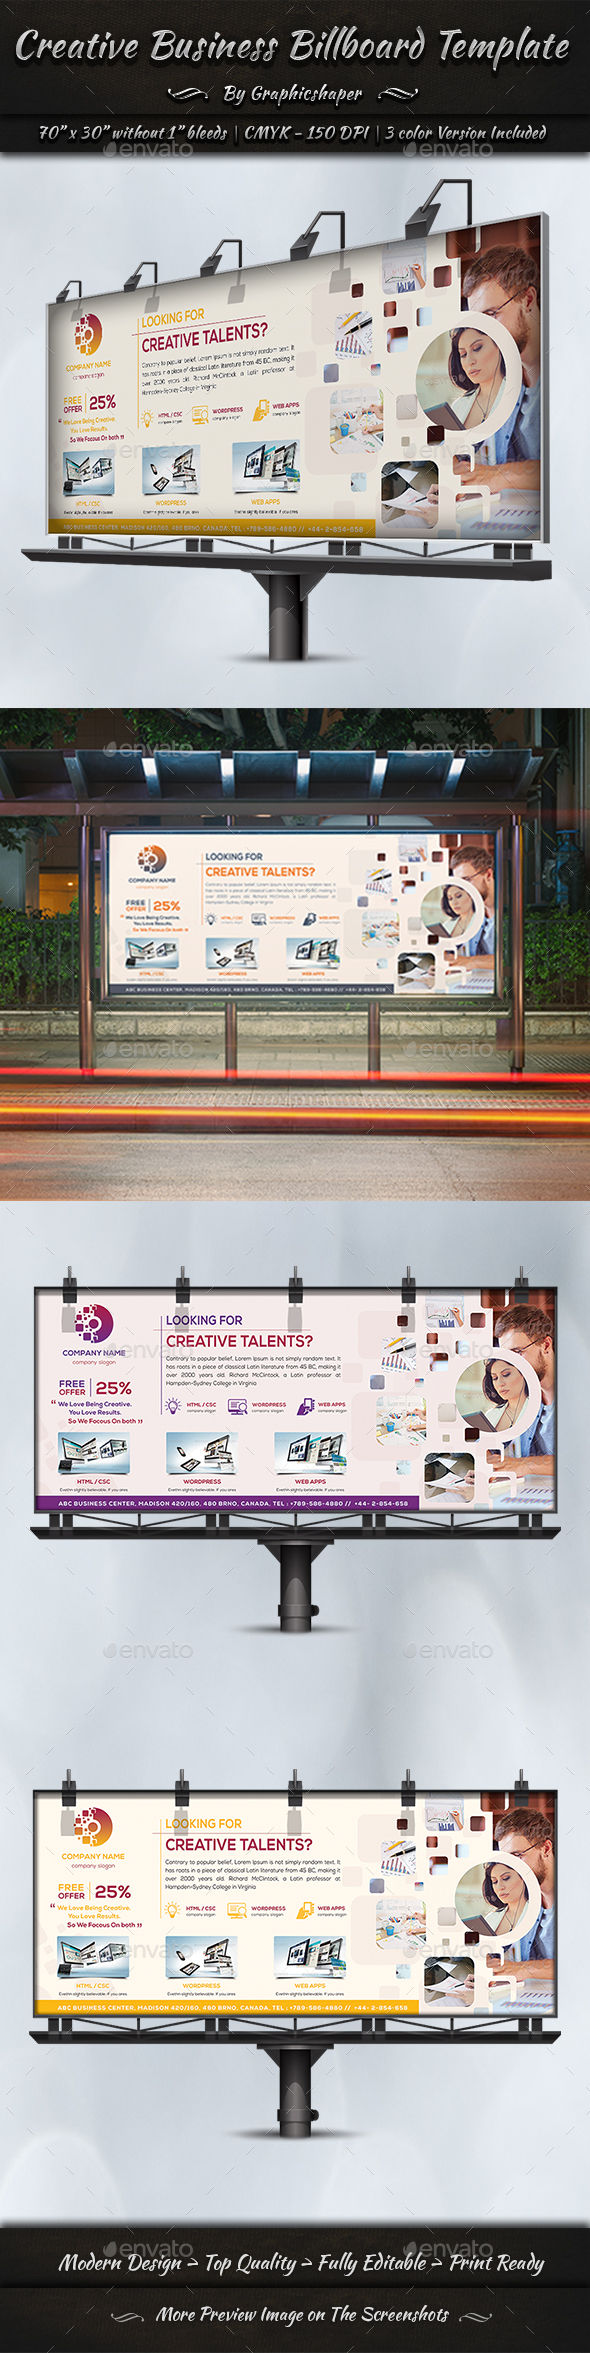 GraphicRiver Creative Business Billboard Template 20786740